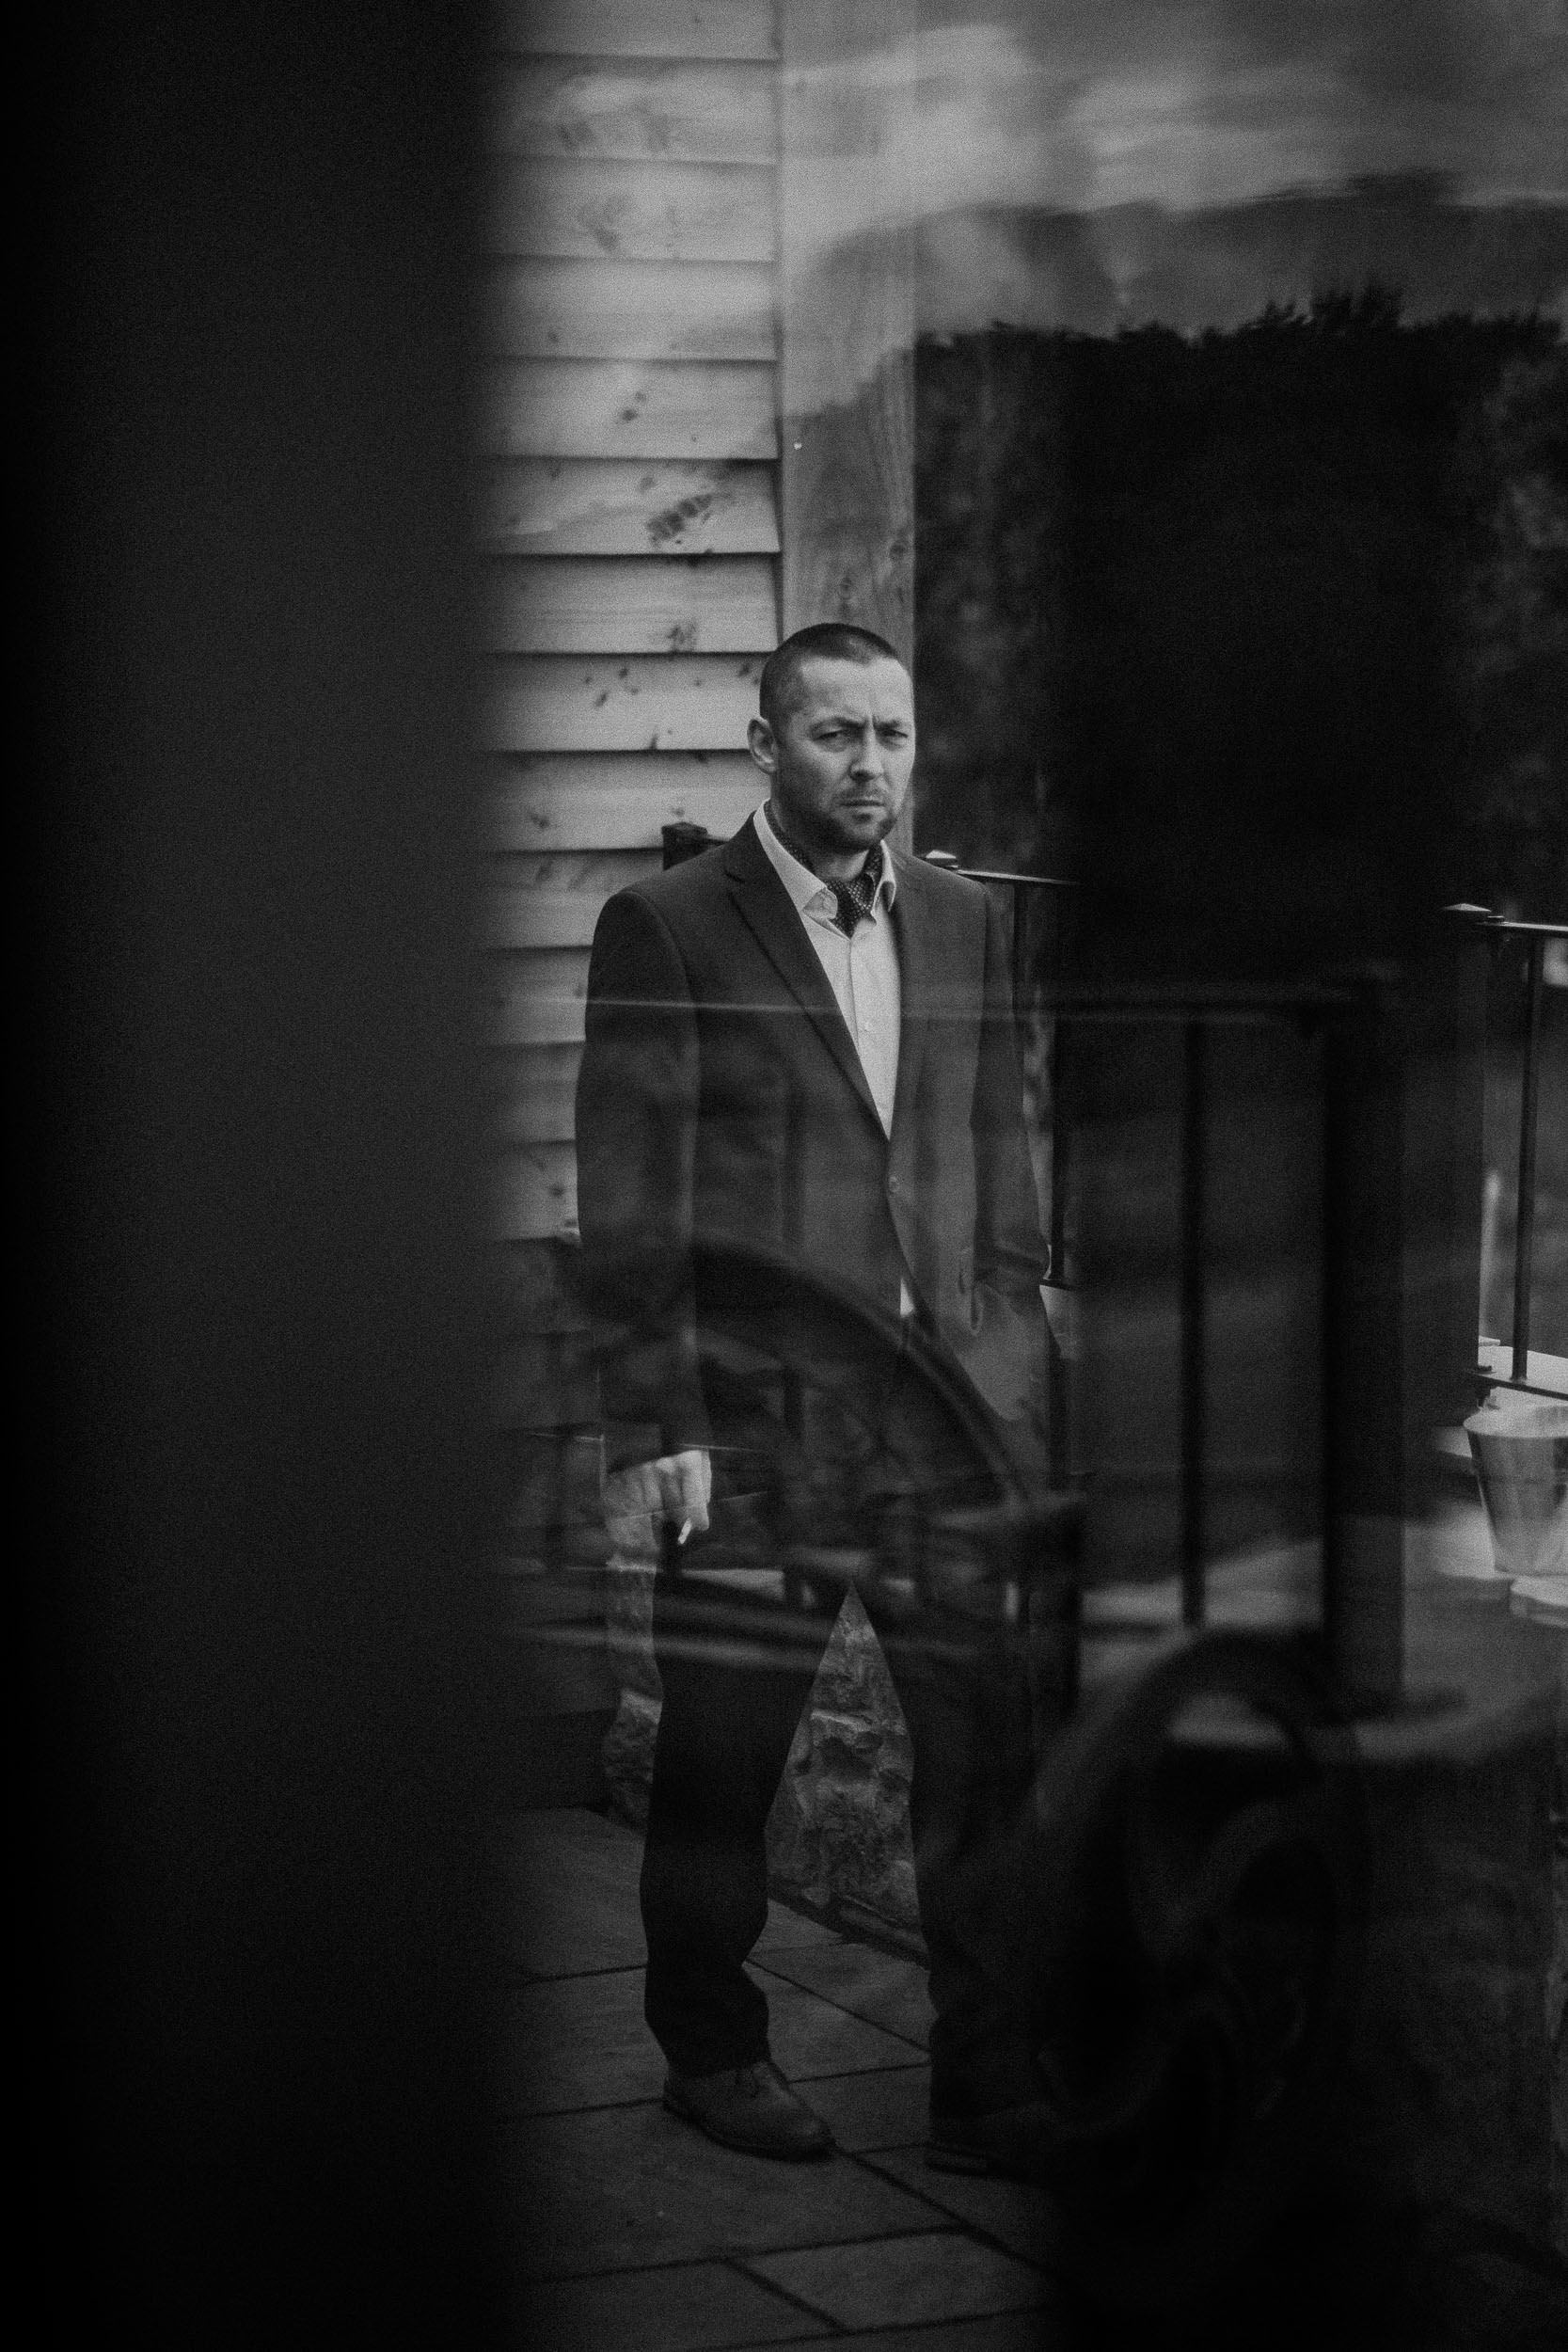 Black and white photo of guest smoking at wedding